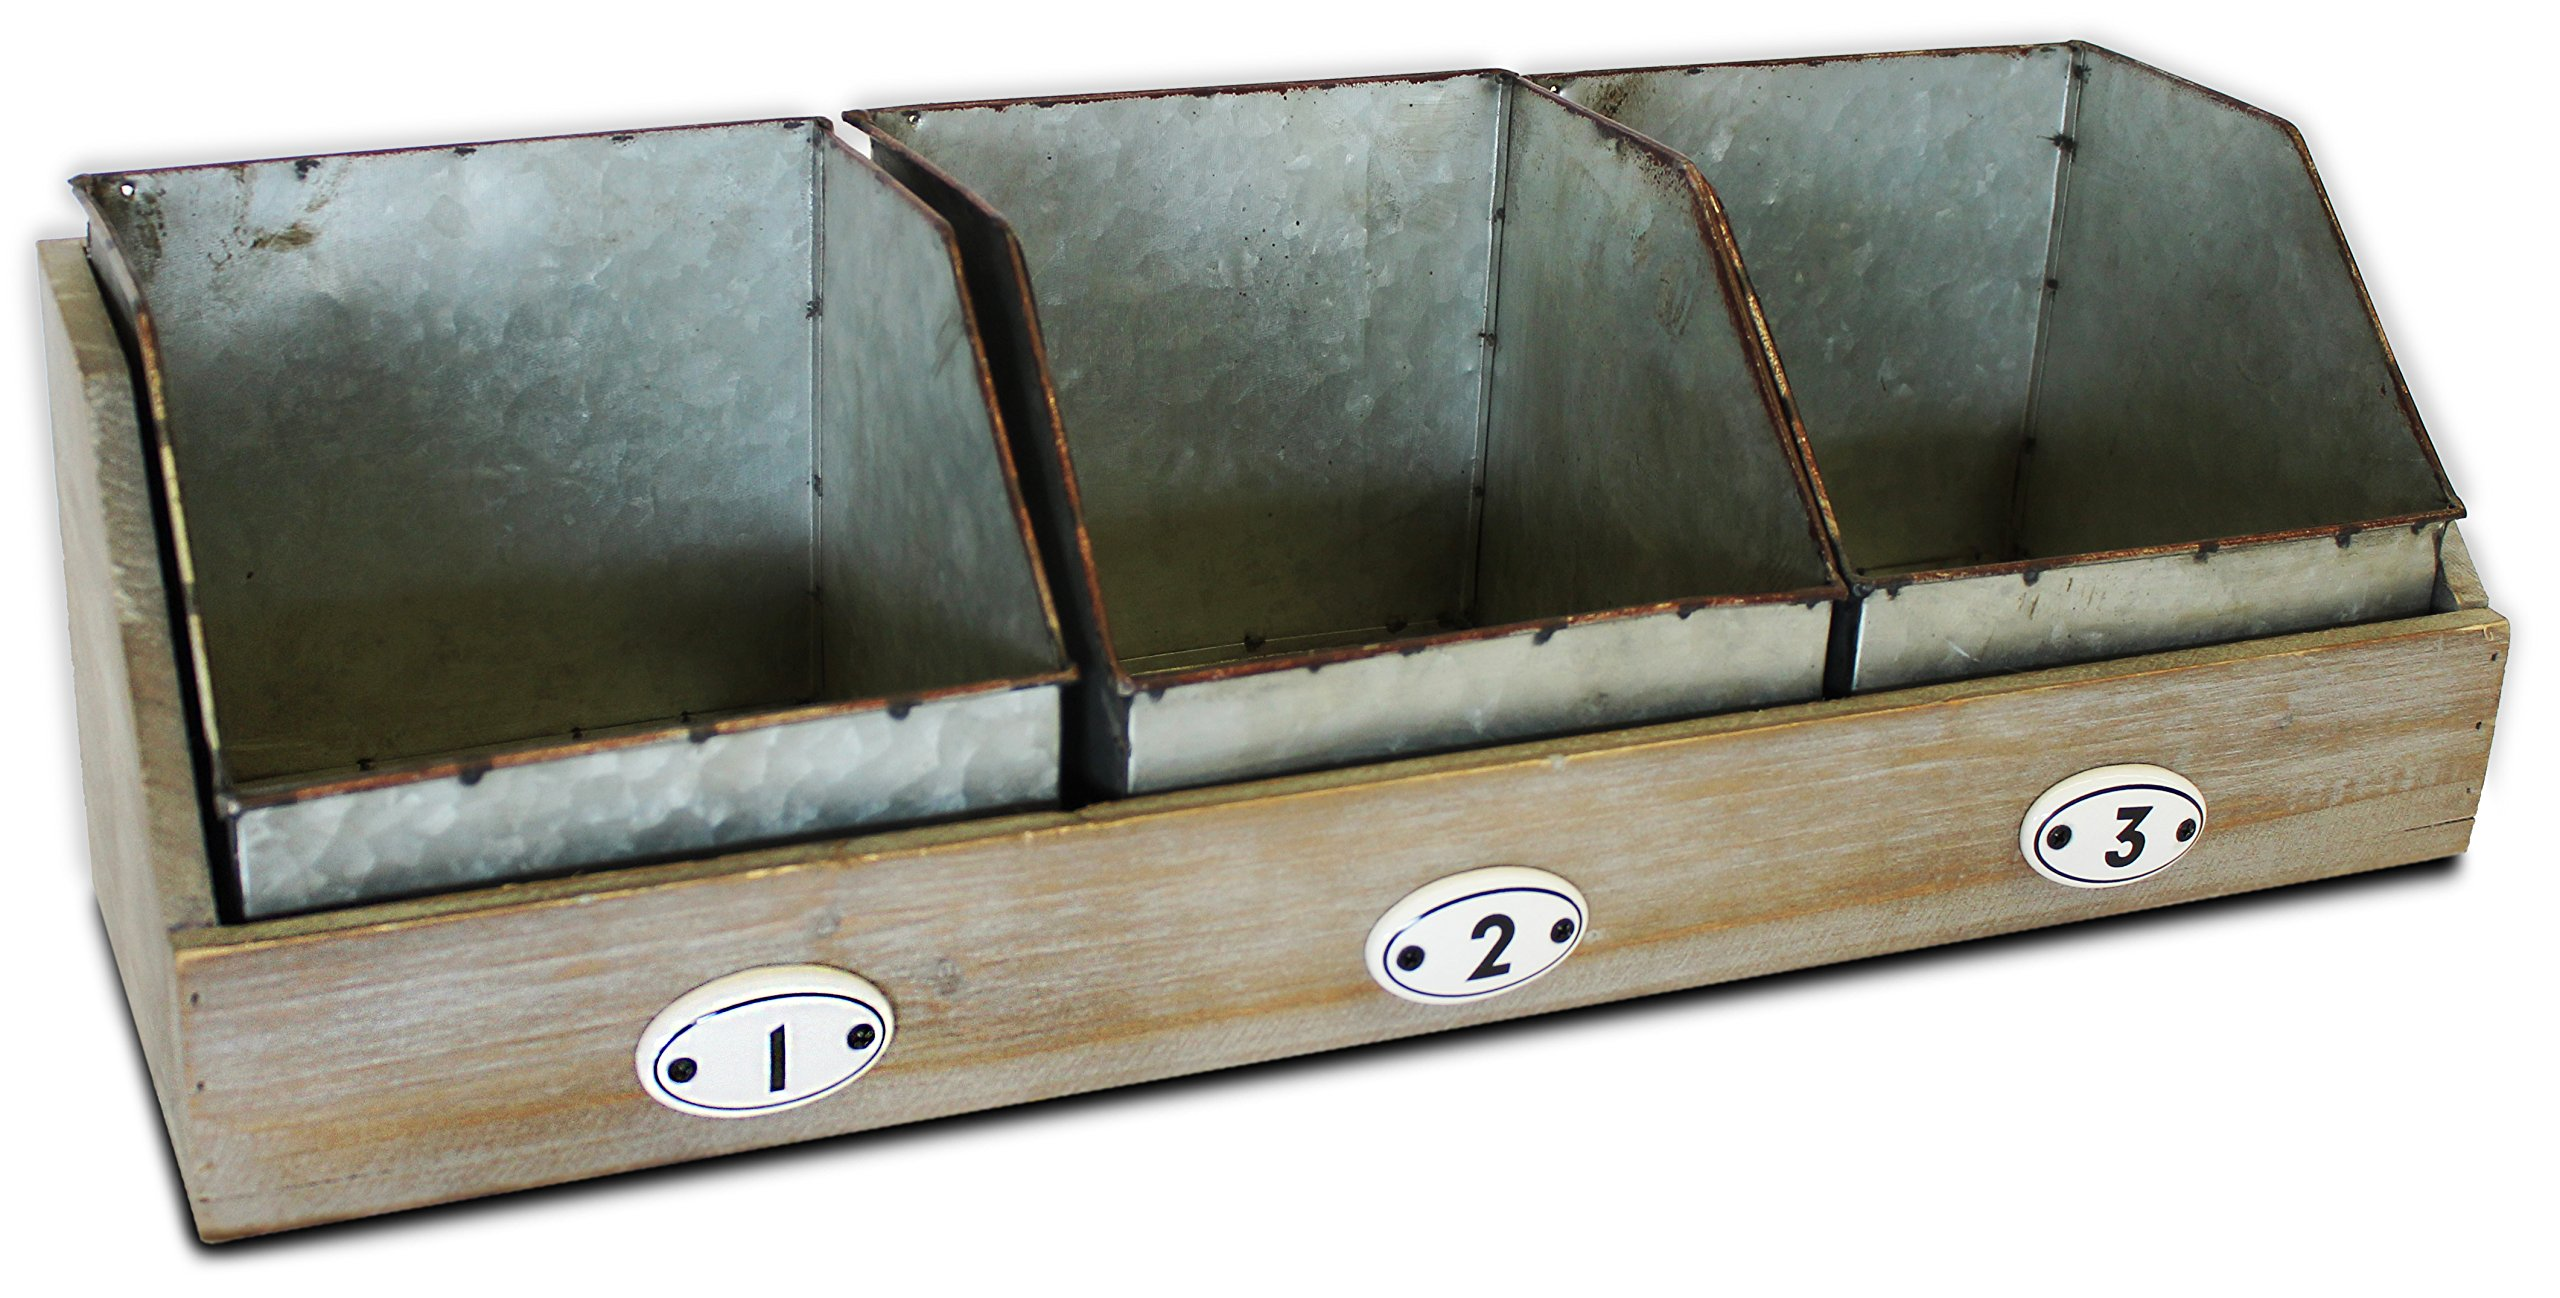 Metal and Wooden Organizer, 20 inches with Three Galvanized Storage Drawers for Counter, Desk, or Shelf by Urban Legacy